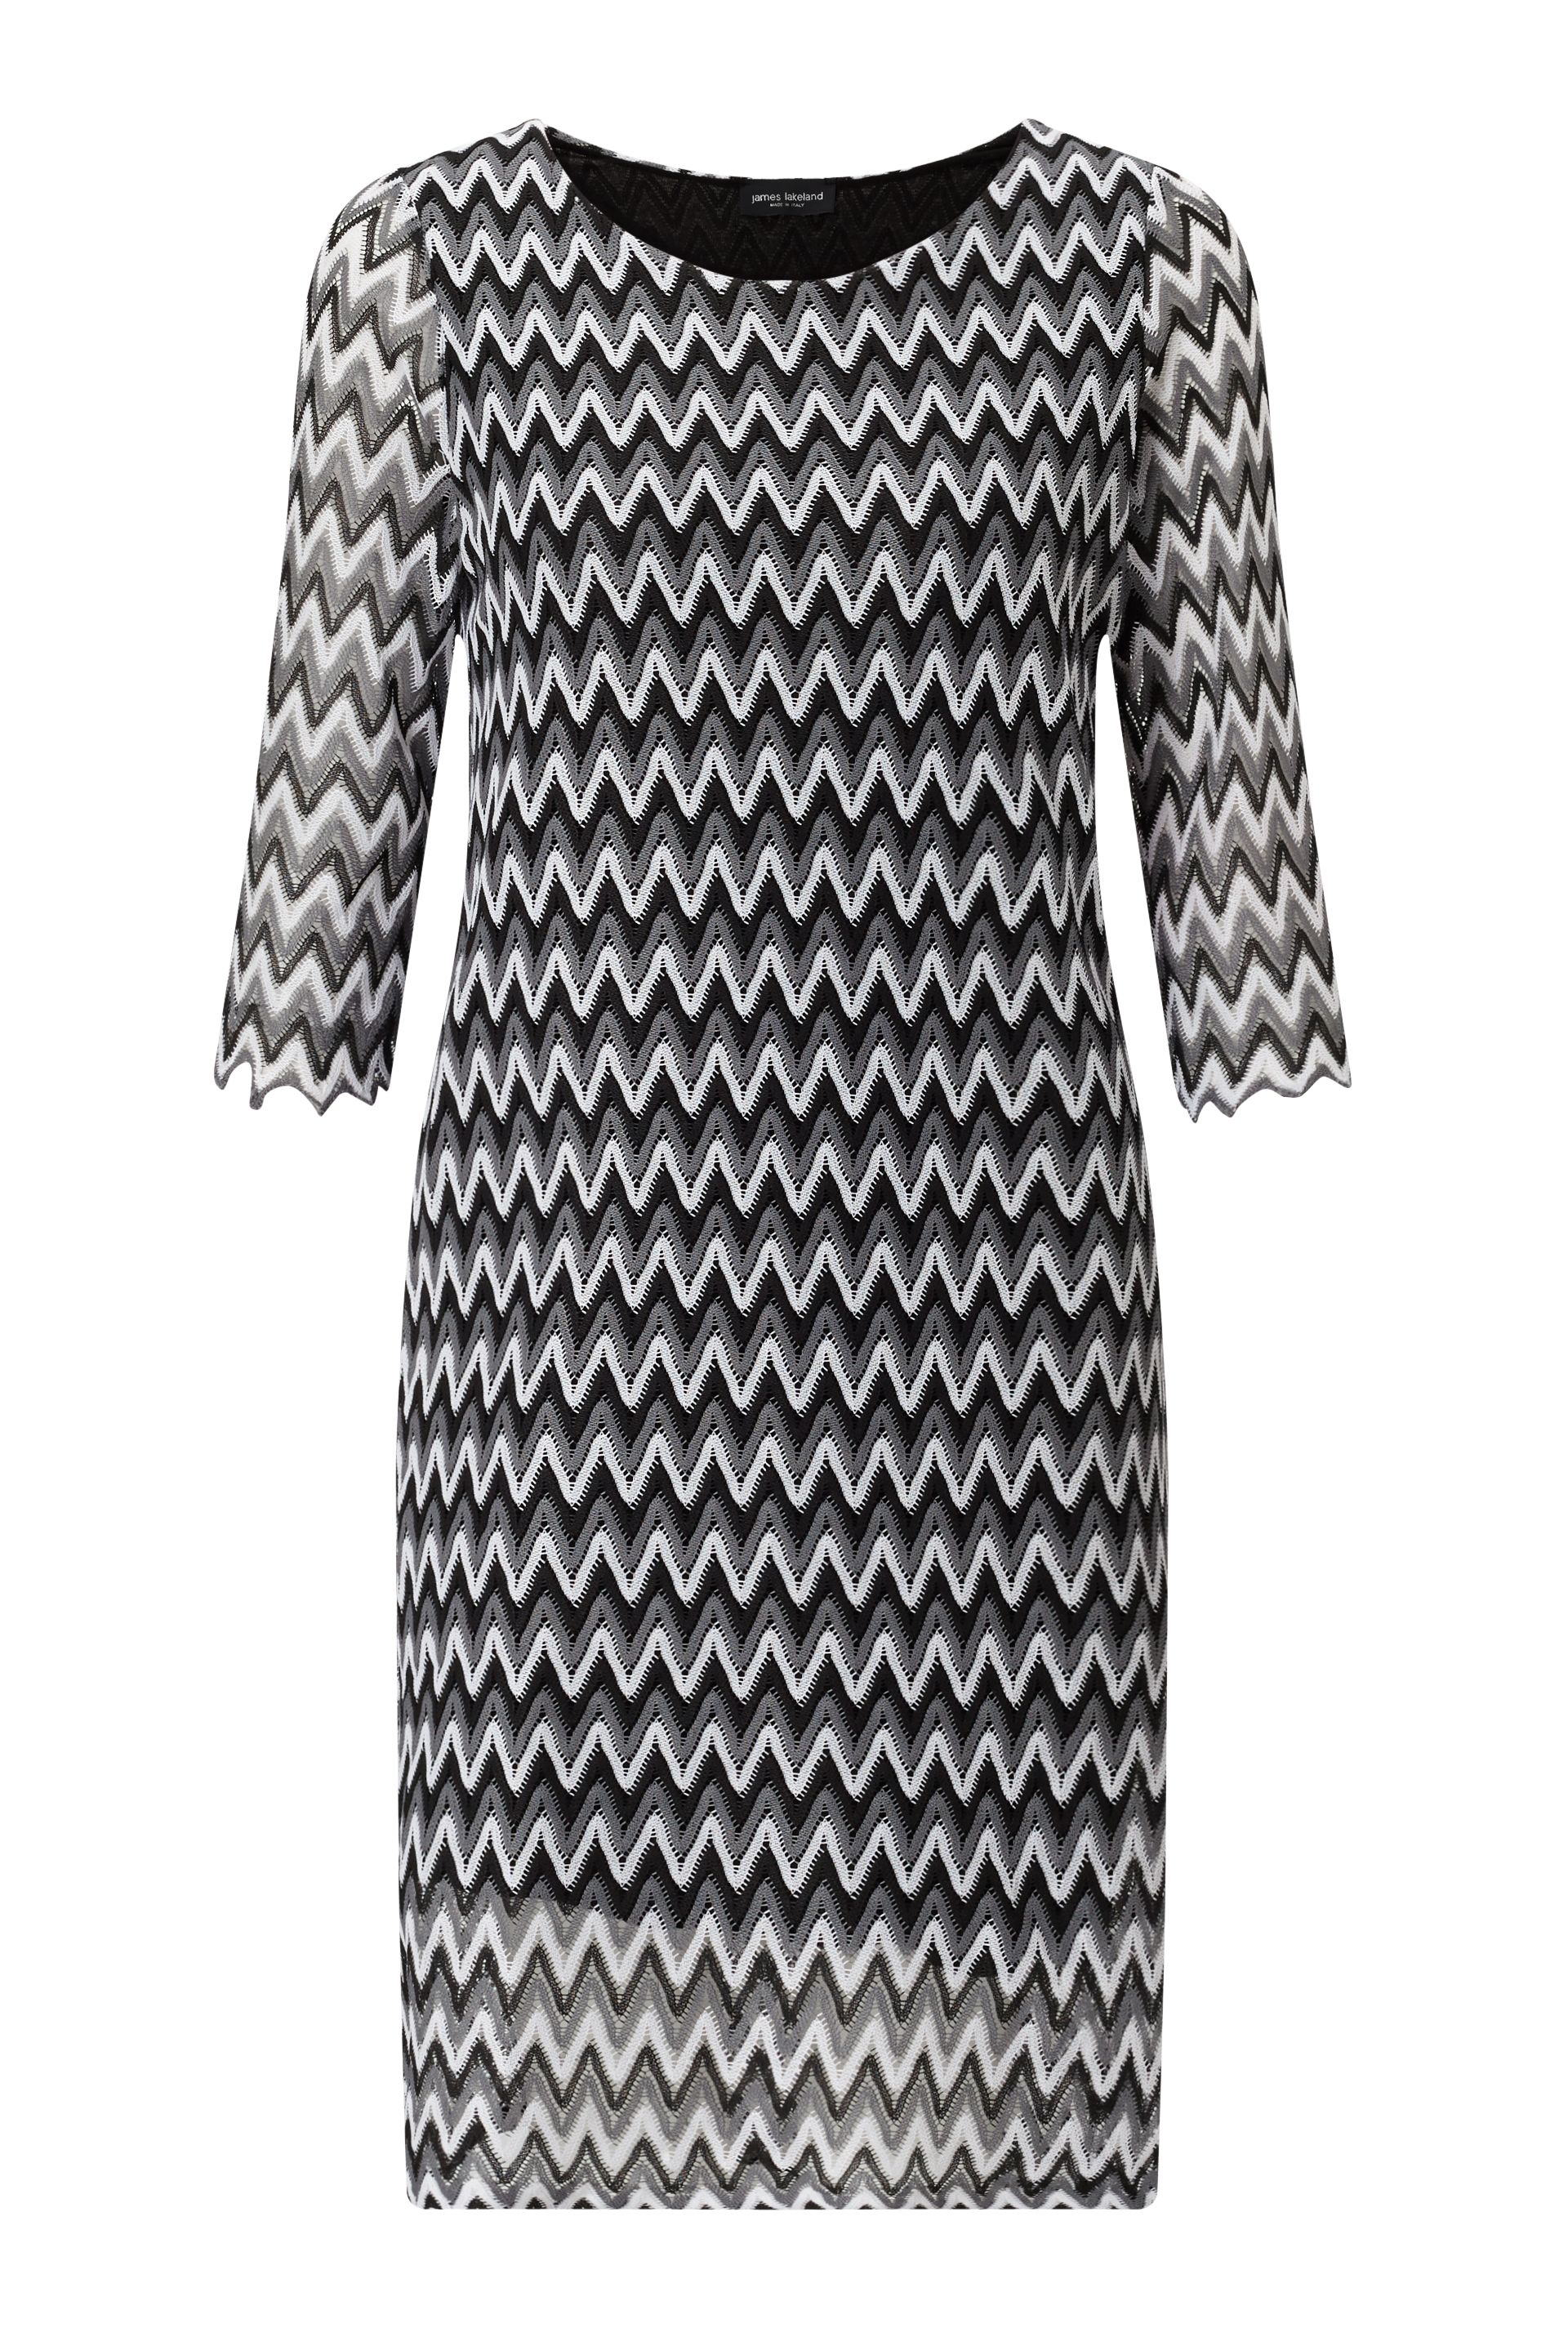 James Lakeland Zig Zag Lace Dress, Grey